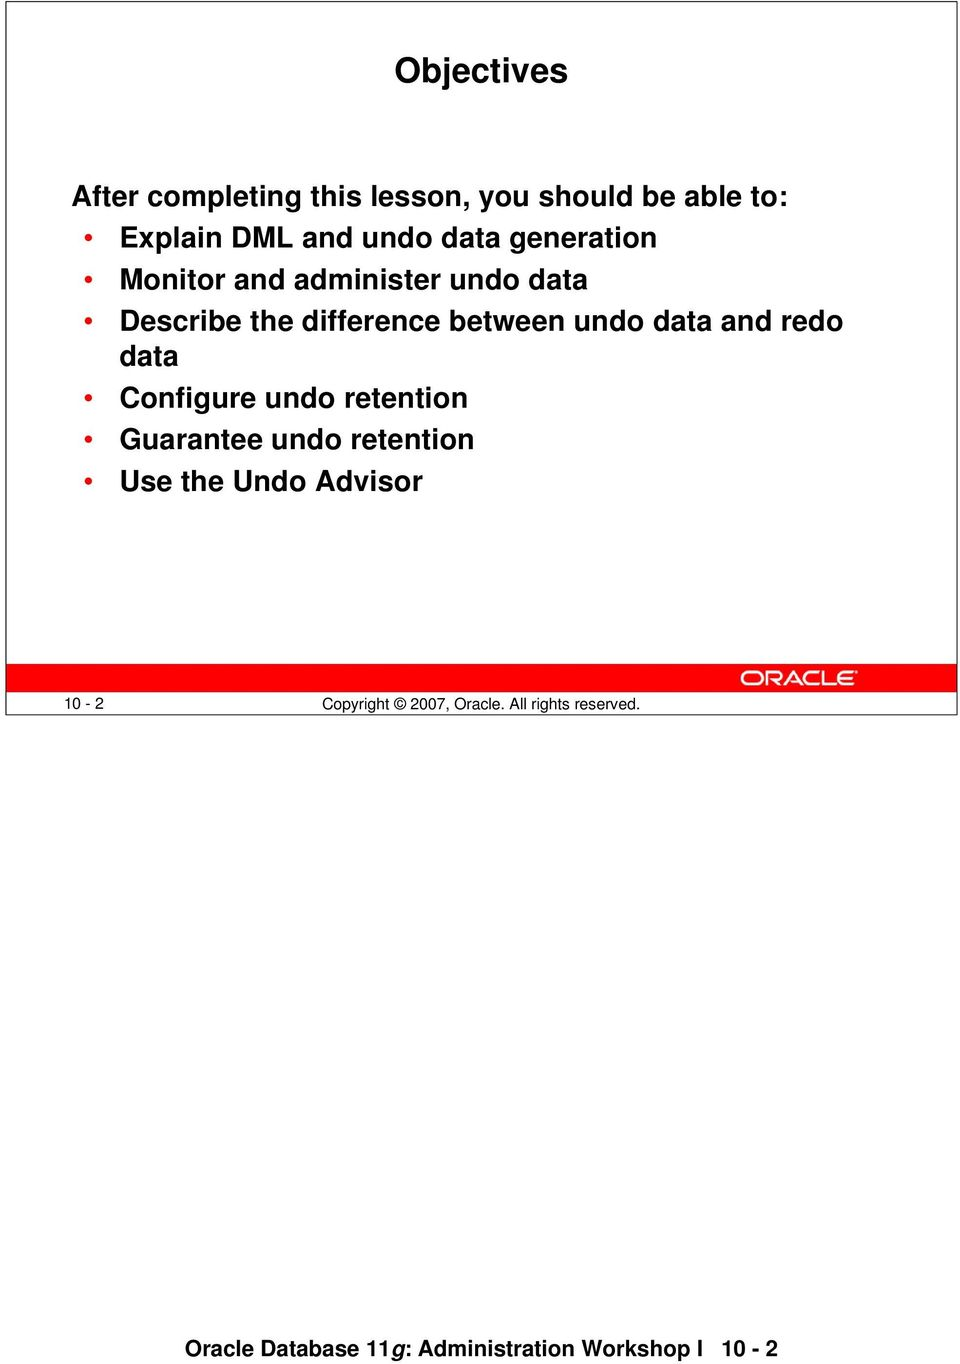 oracle database 11g administration workshop 1 pdf free download